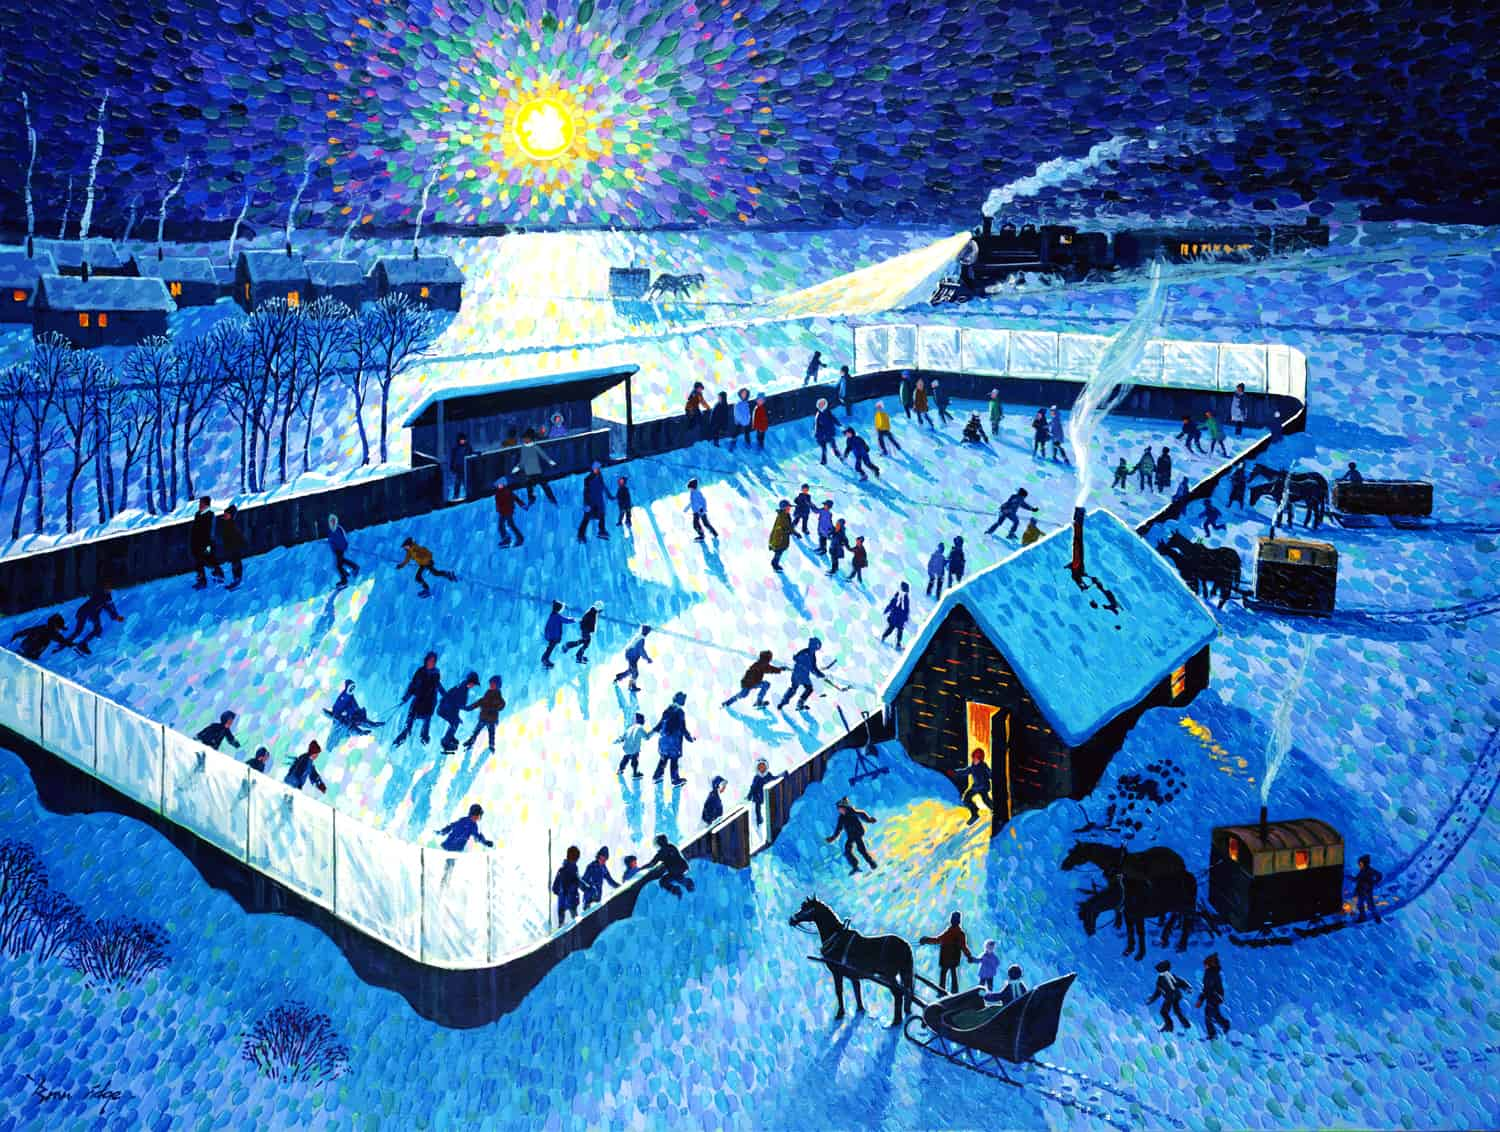 Skating Rink by Moonlight